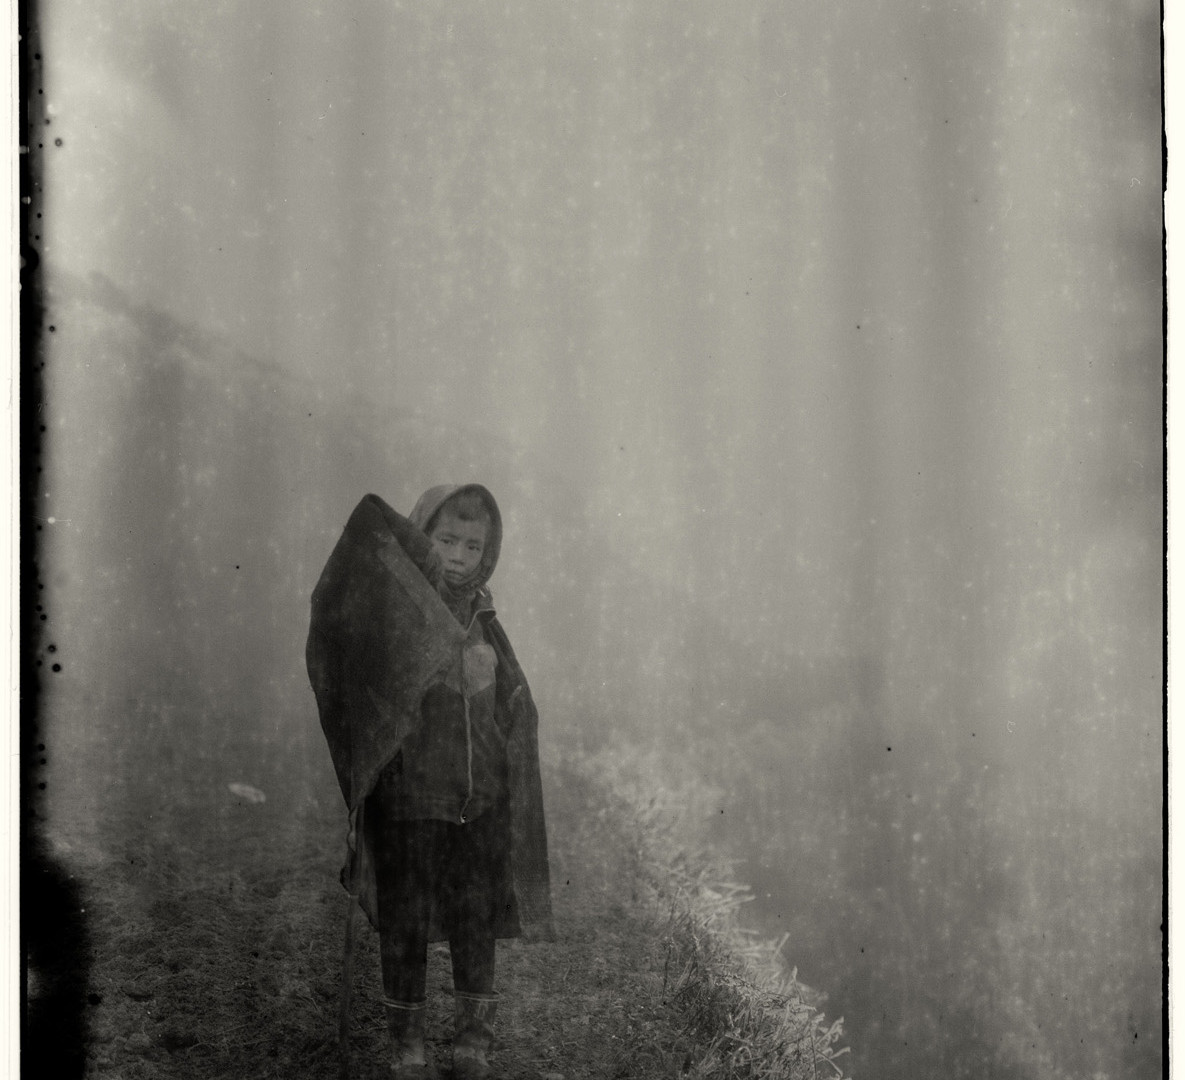 Adou, Fog, Child, Frost, 2006